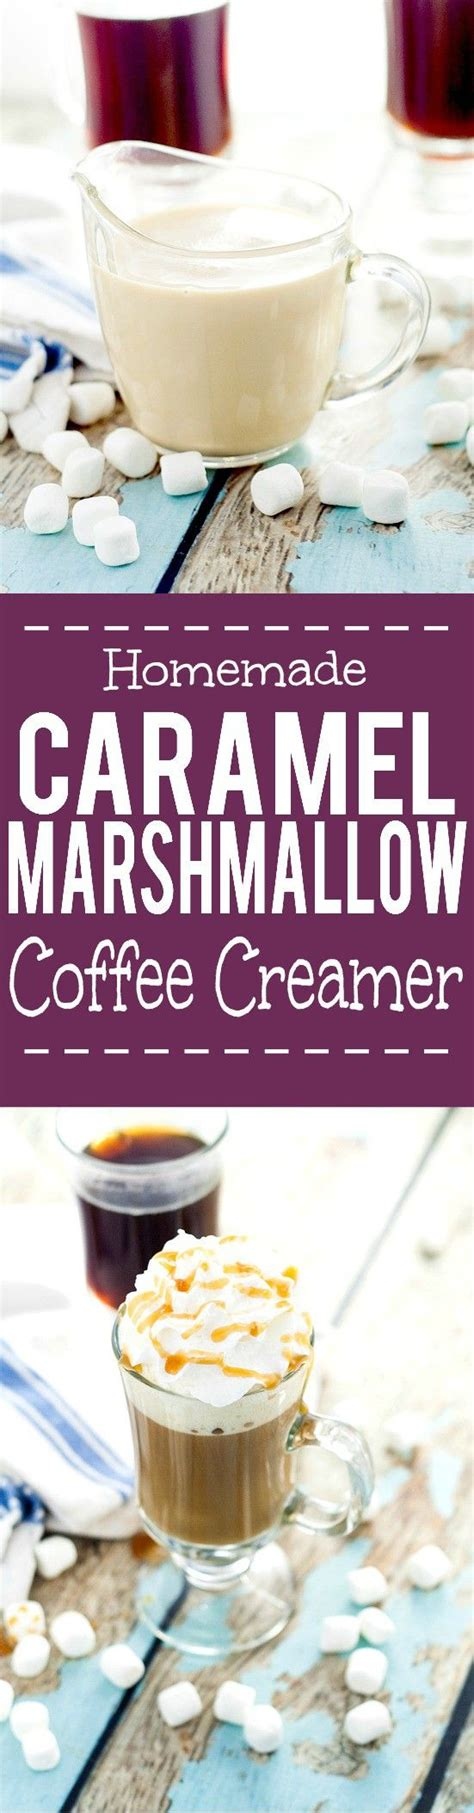 Flavored coffee creamers may be delicious, but they're usually full of added sugar and preservatives. Homemade Caramel Marshmallow Coffee Creamer recipe - Light ...